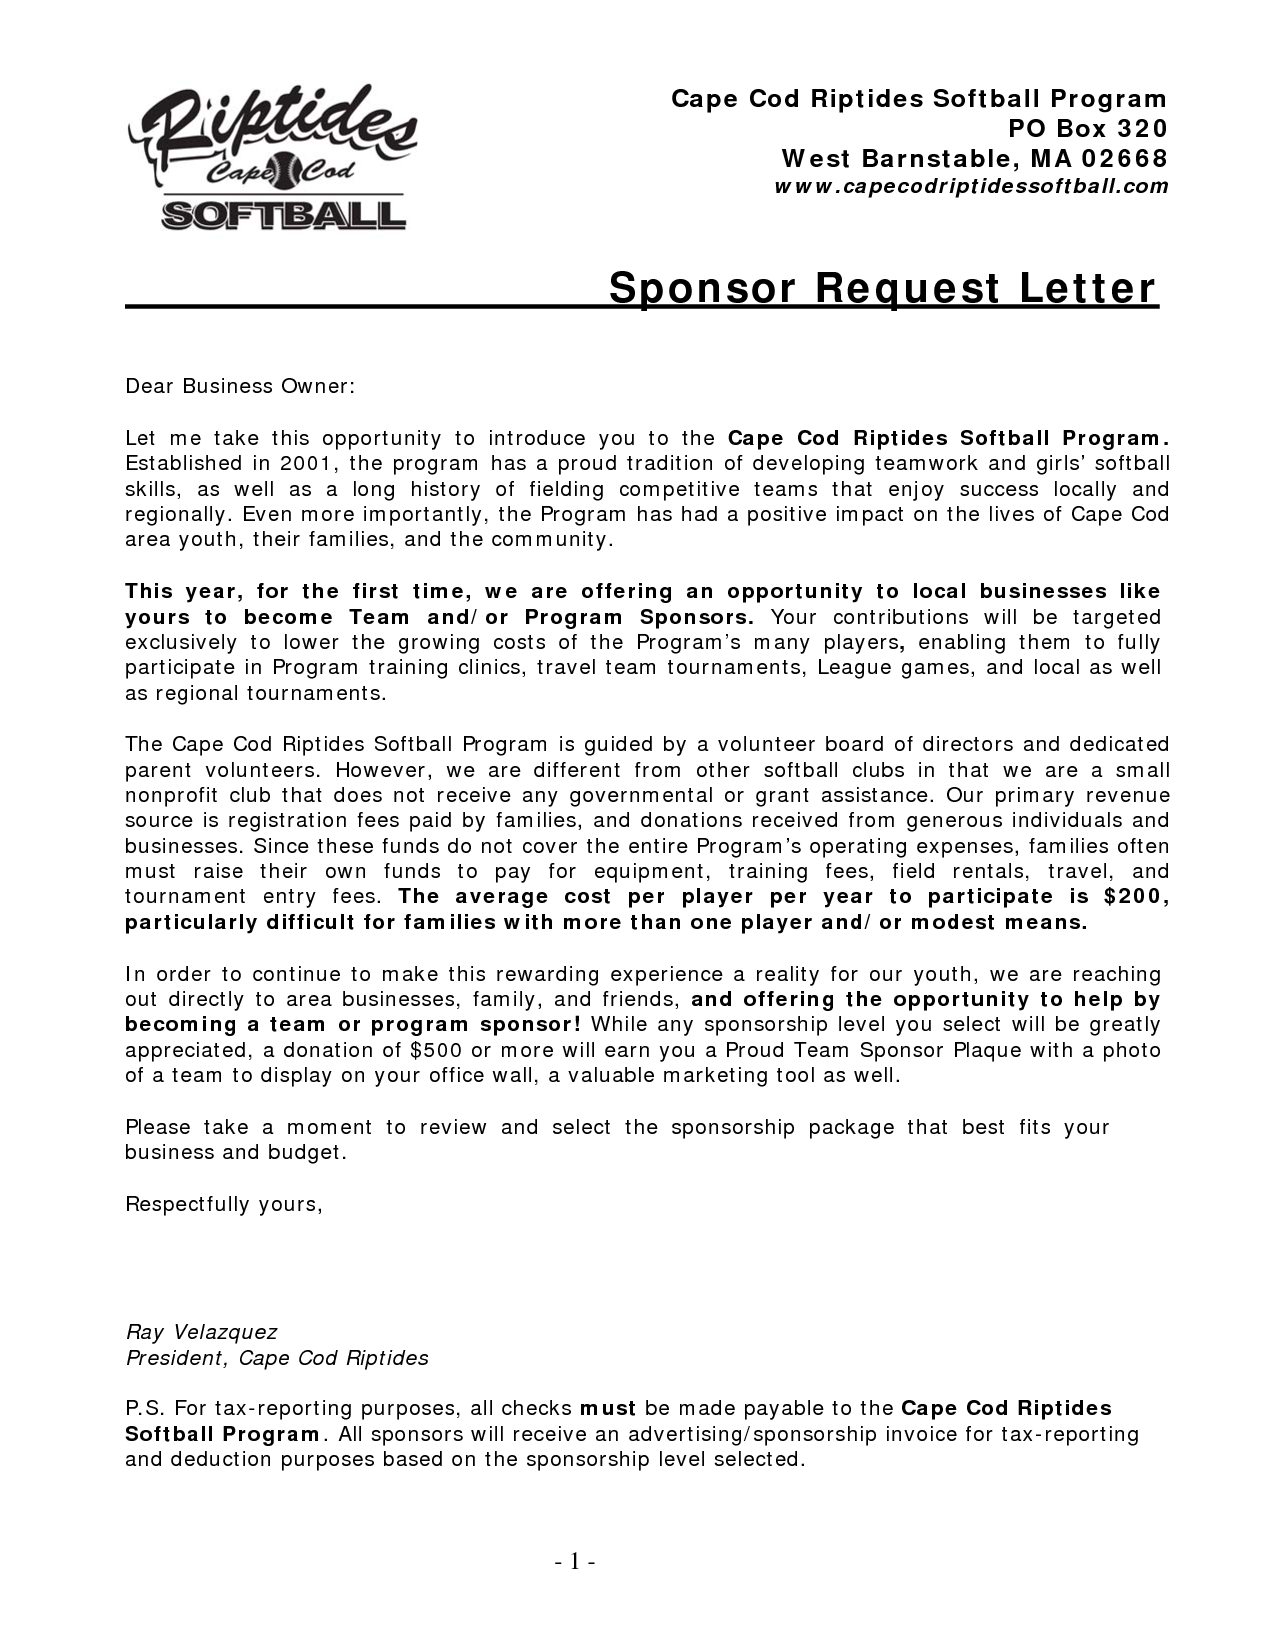 image result for sample softball sponsor request letter